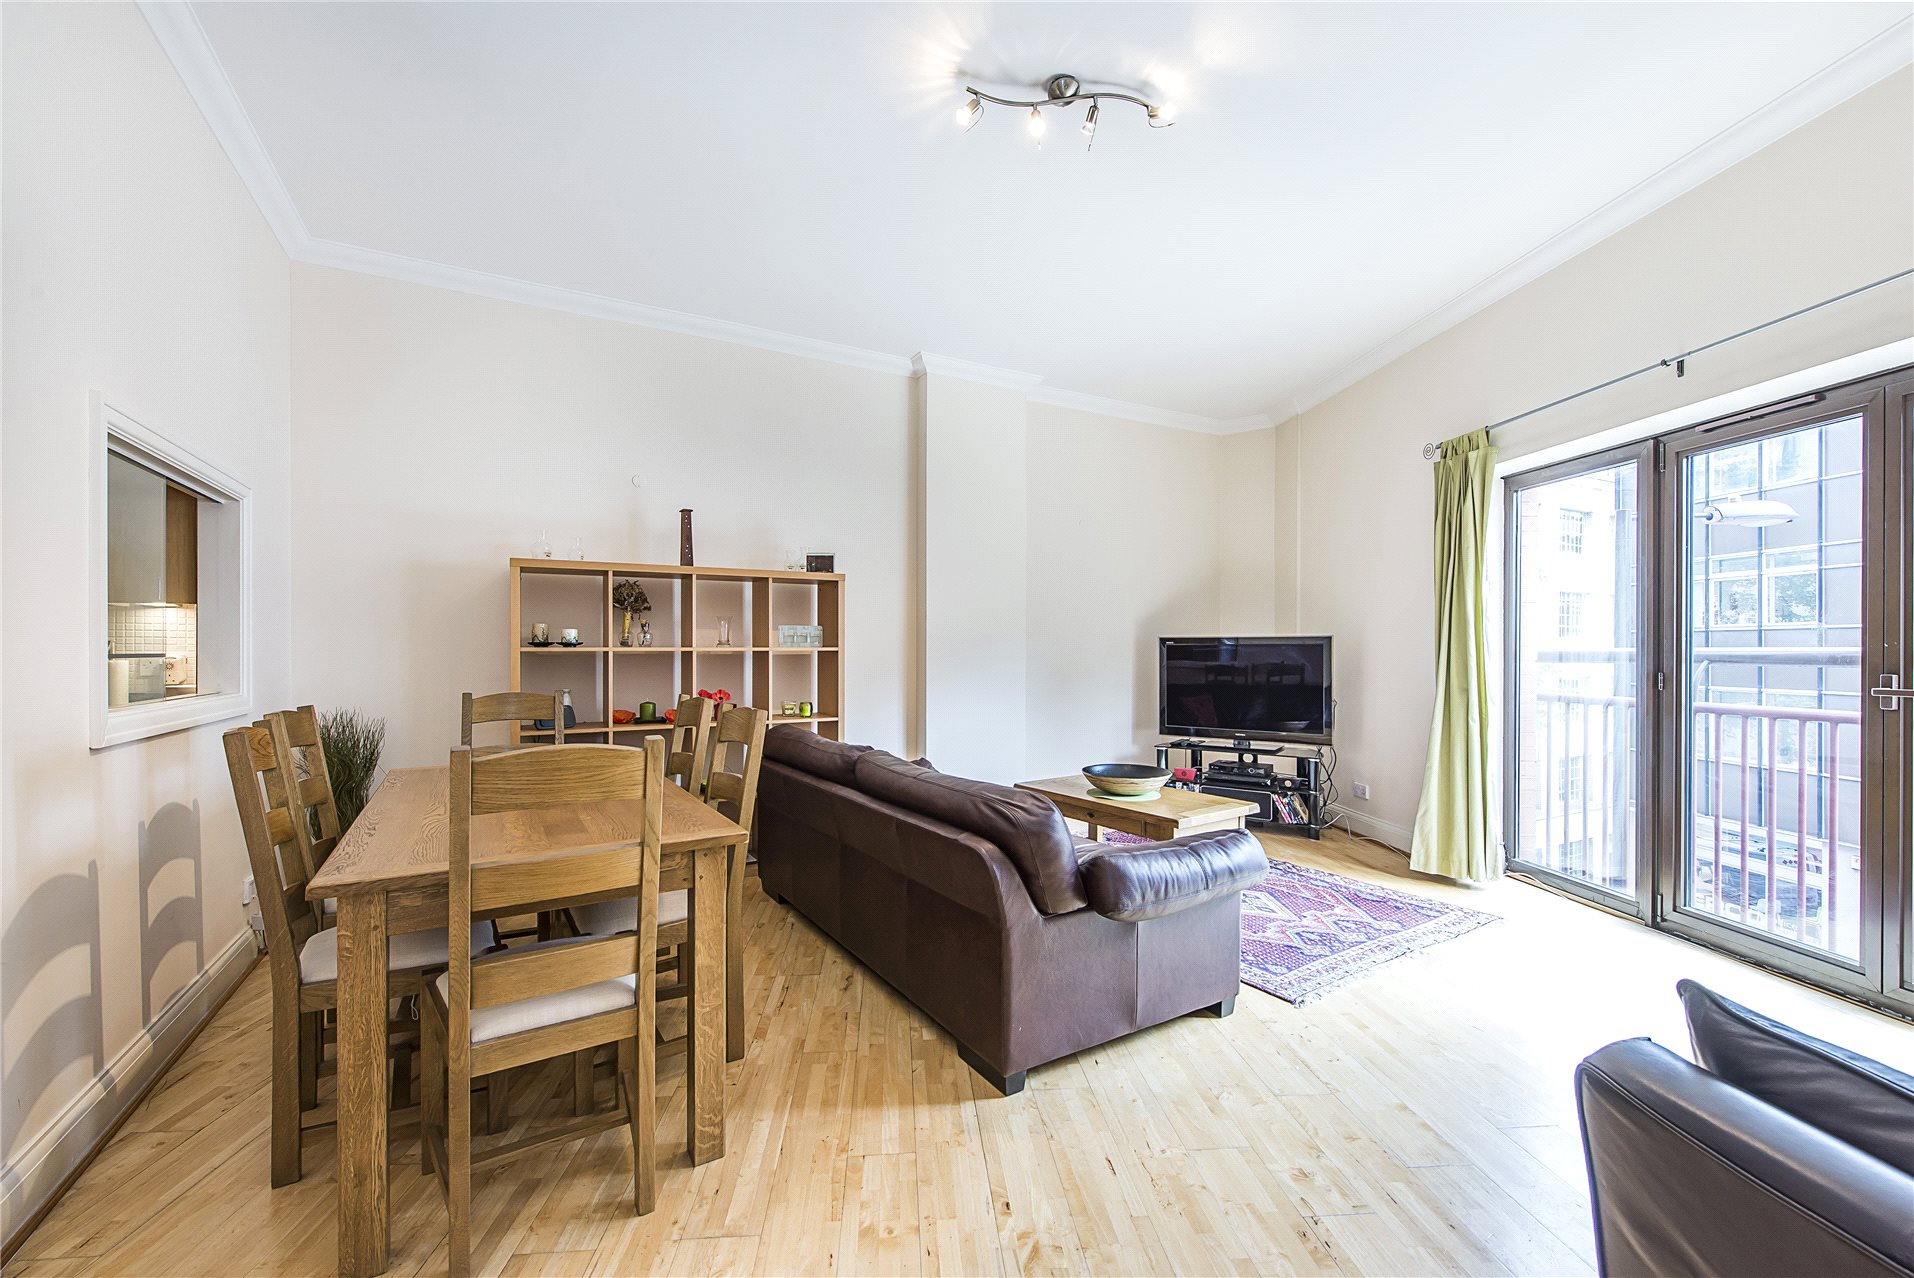 2 Bedrooms House for sale in Herbal Hill Gardens, 9 Herbal Hill, London, EC1R